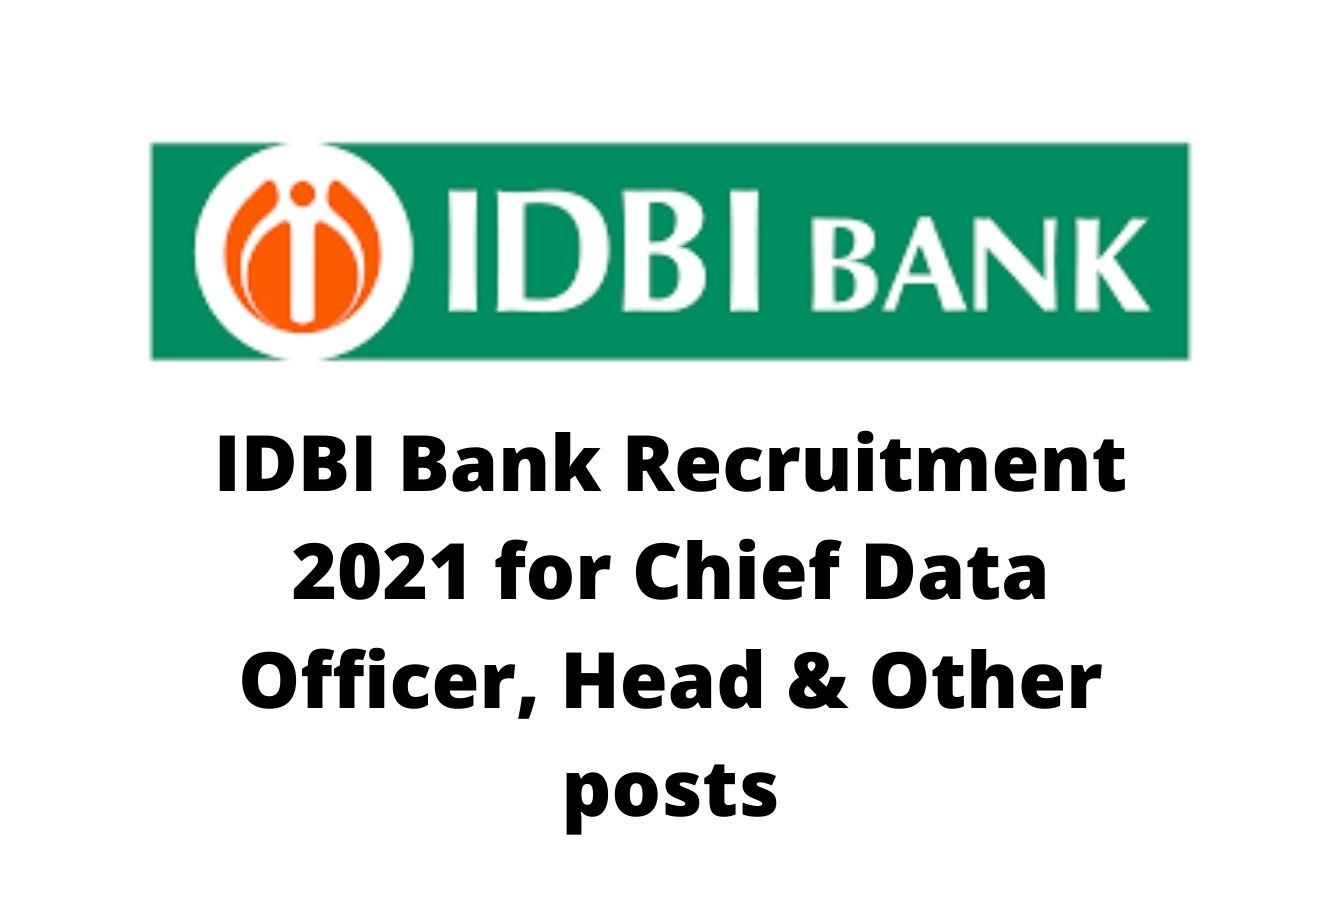 IDBI Bank Recruitment 2021 for Chief Data Officer, Head & Other posts